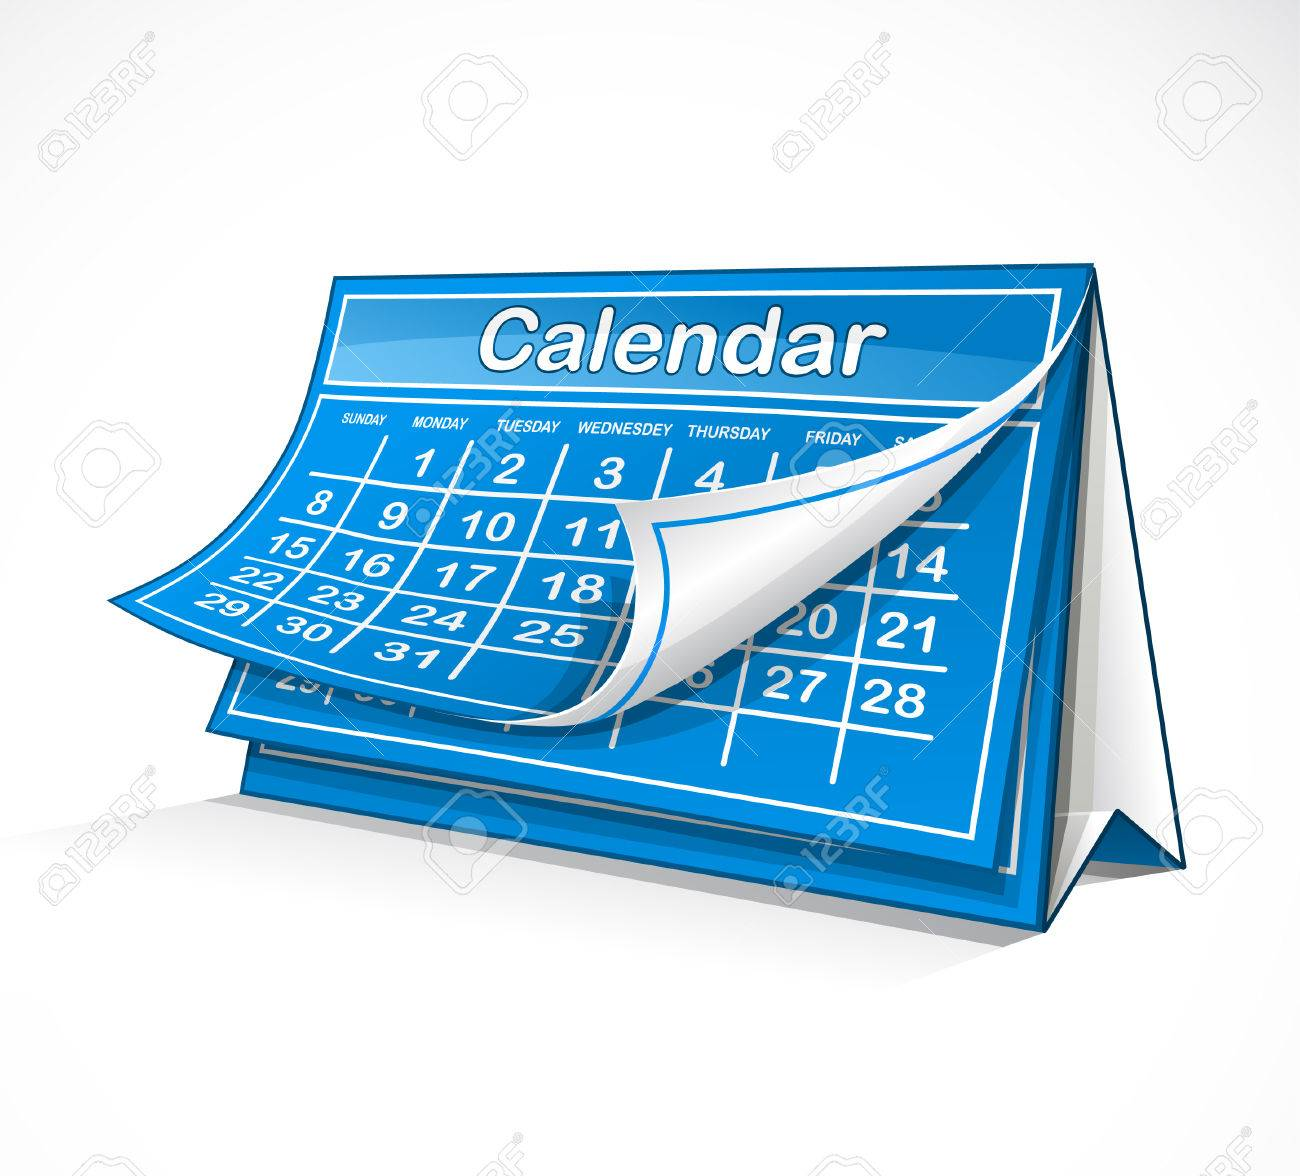 an essay on the landlady by roald dahl helpme the landlady short story essay outline essay in spanish about holidays calendar